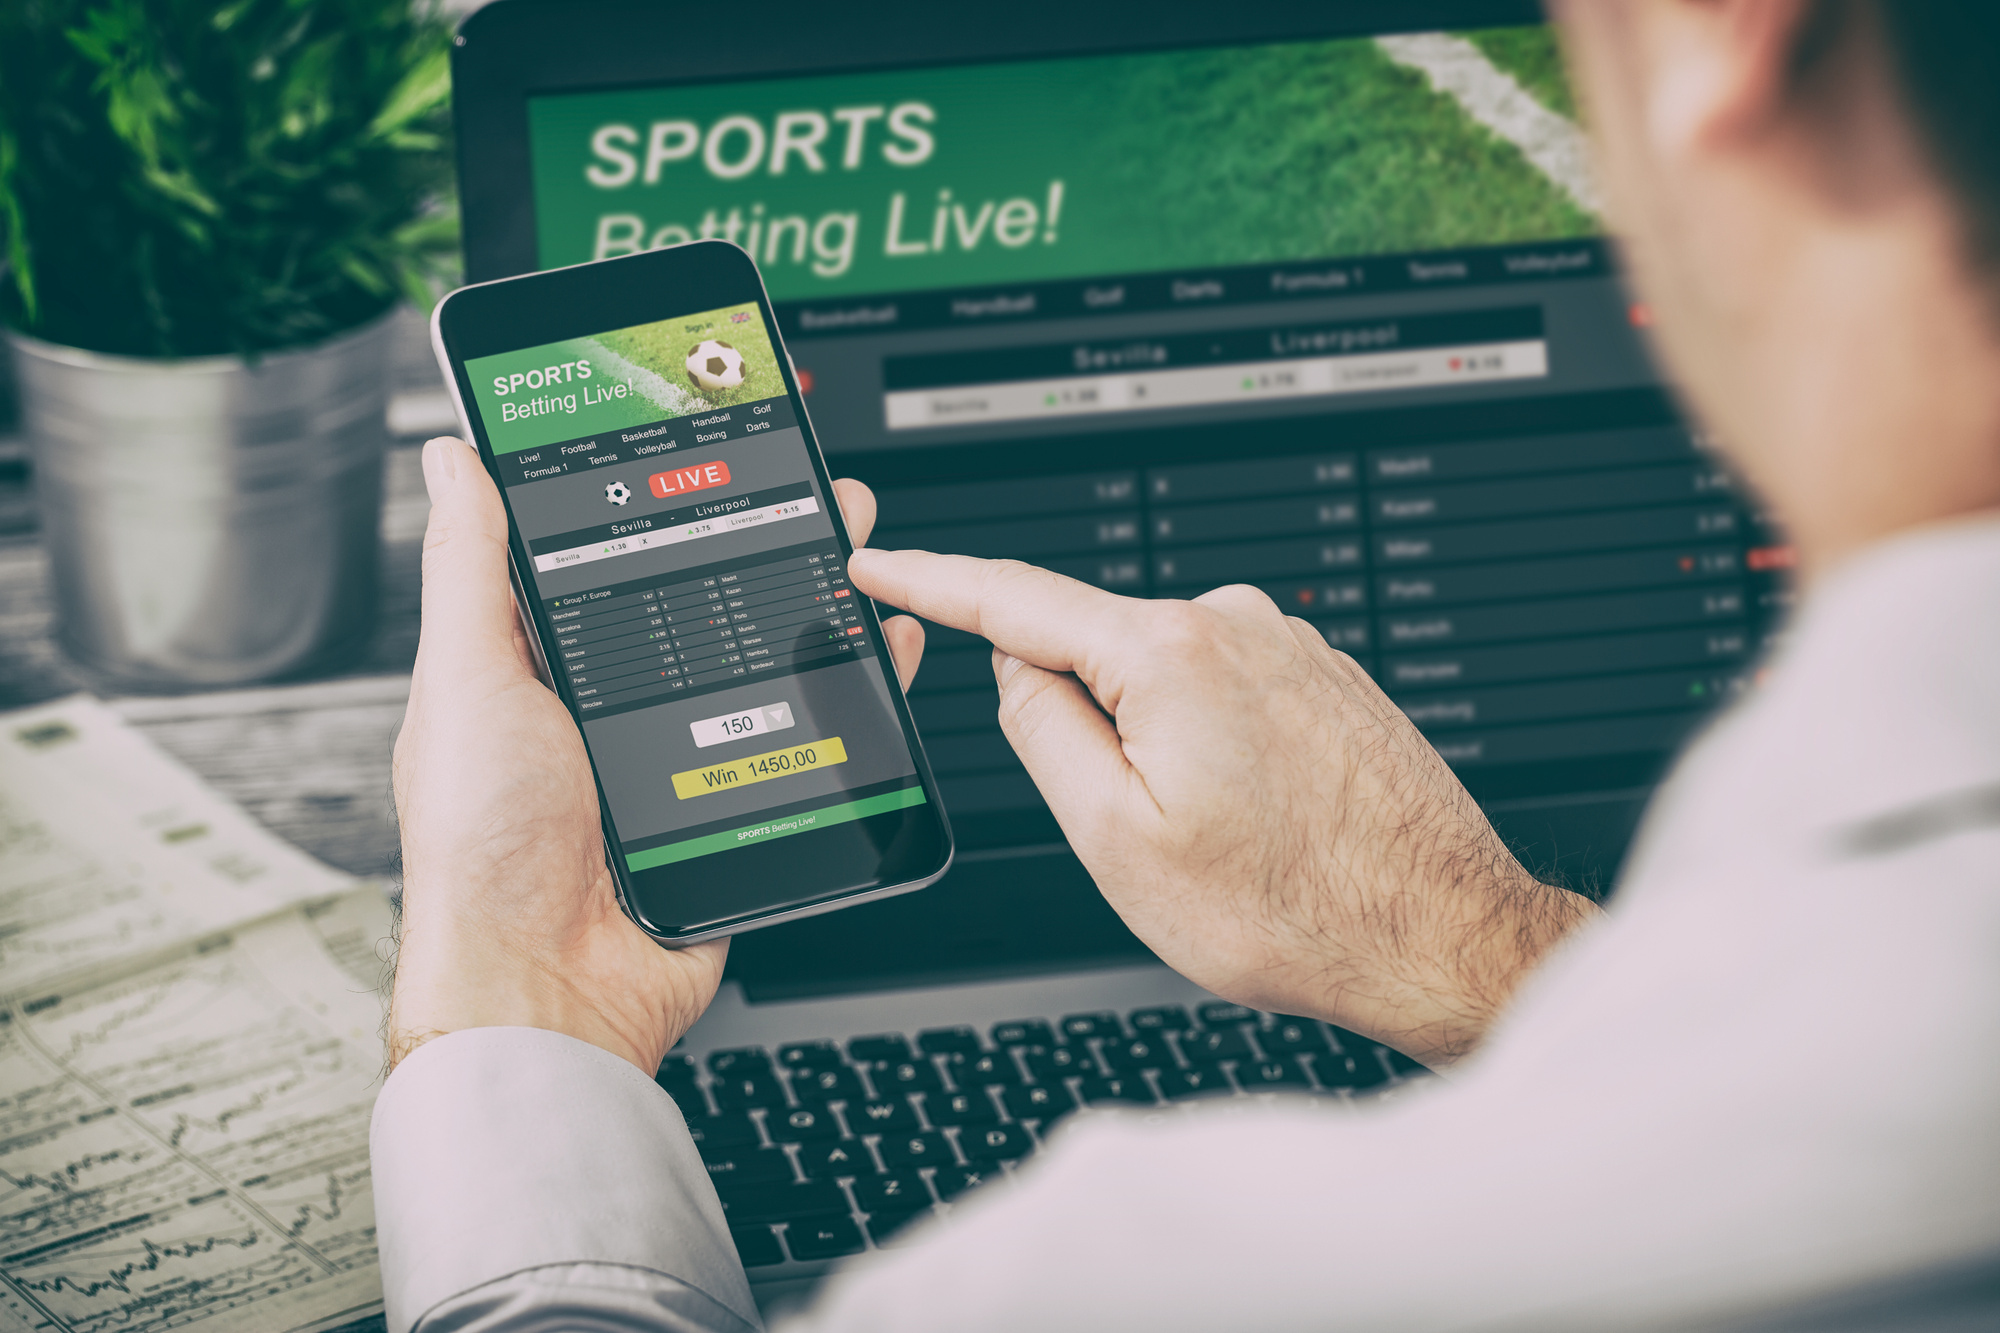 Man checking out sports betting odds